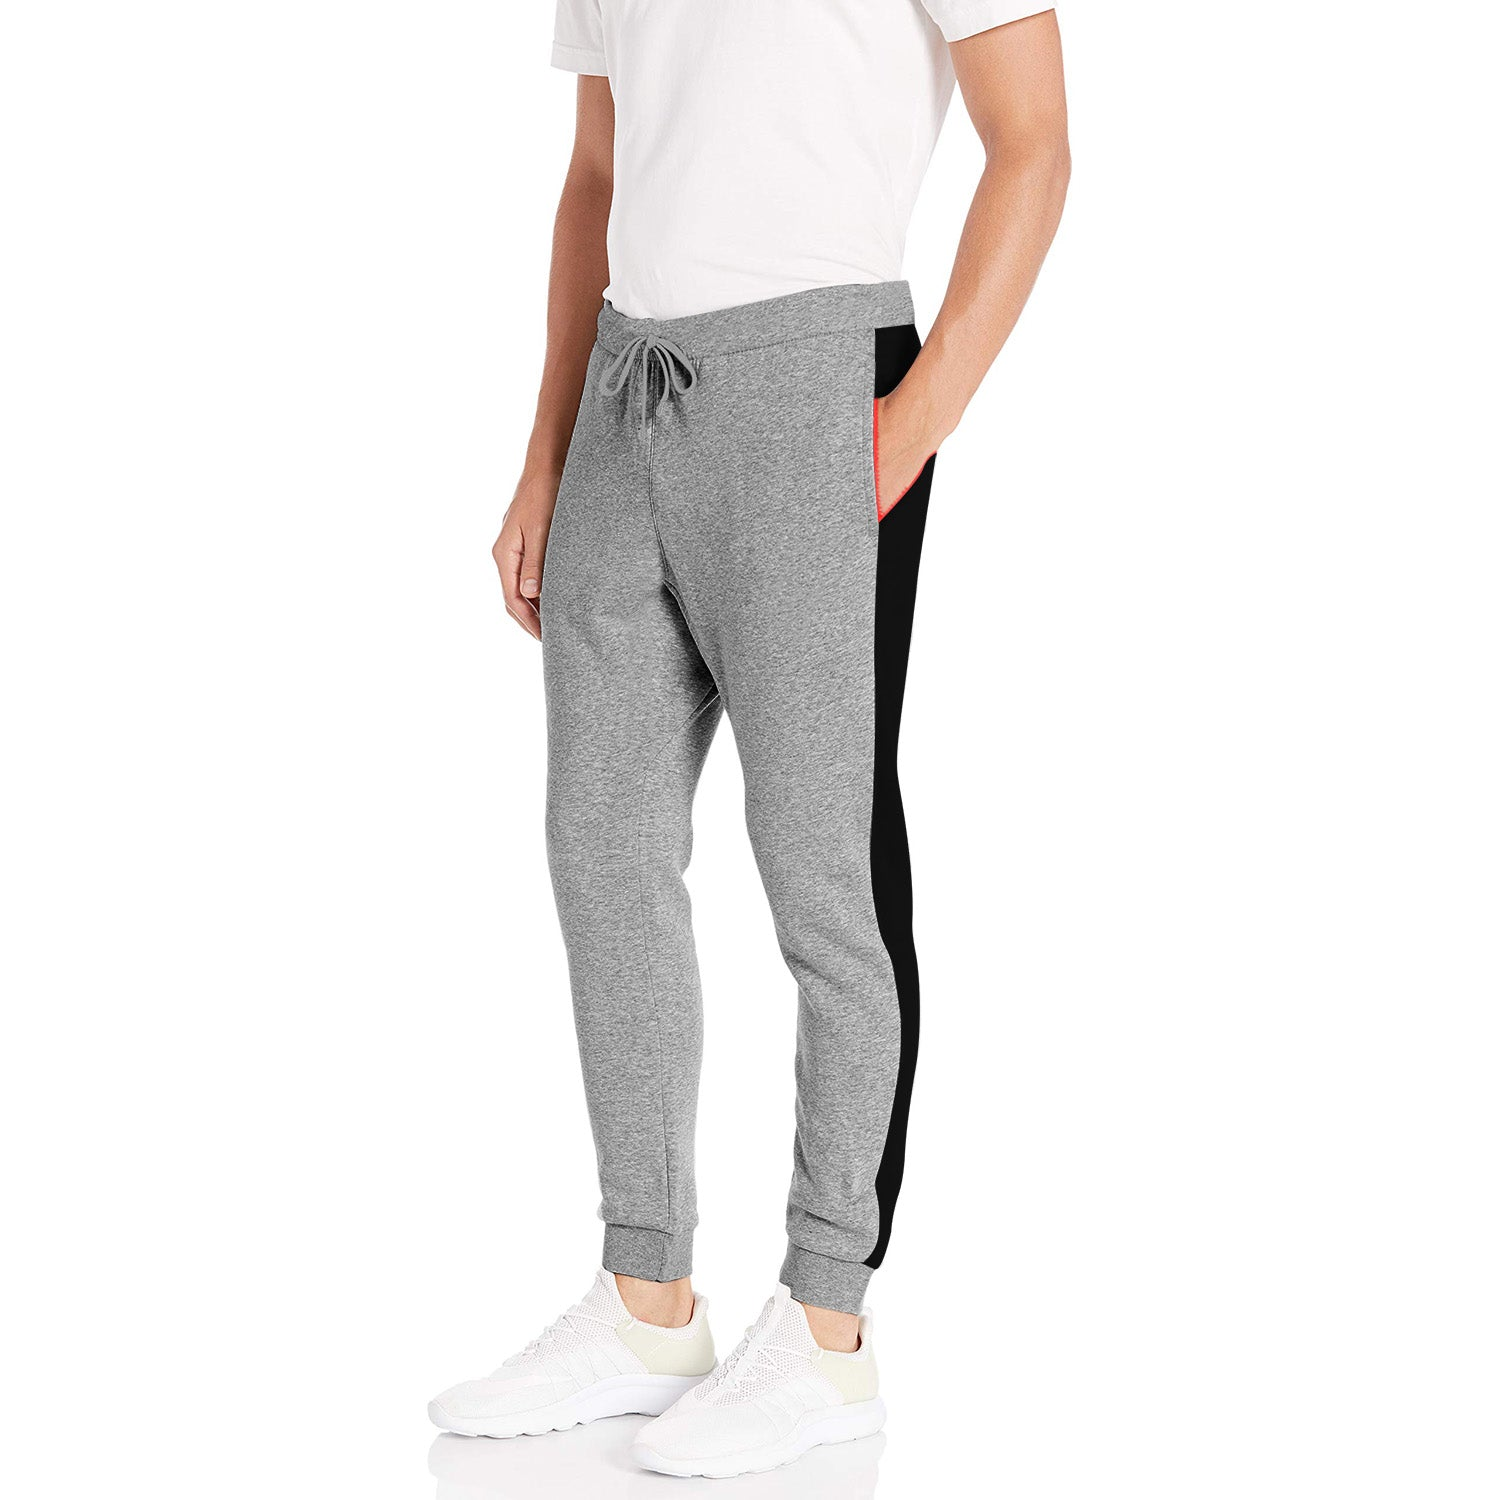 Diesel Summer Slim Fit Jogger Trouser For Men-Dark Grey Melange & Black Stripe-SP2226